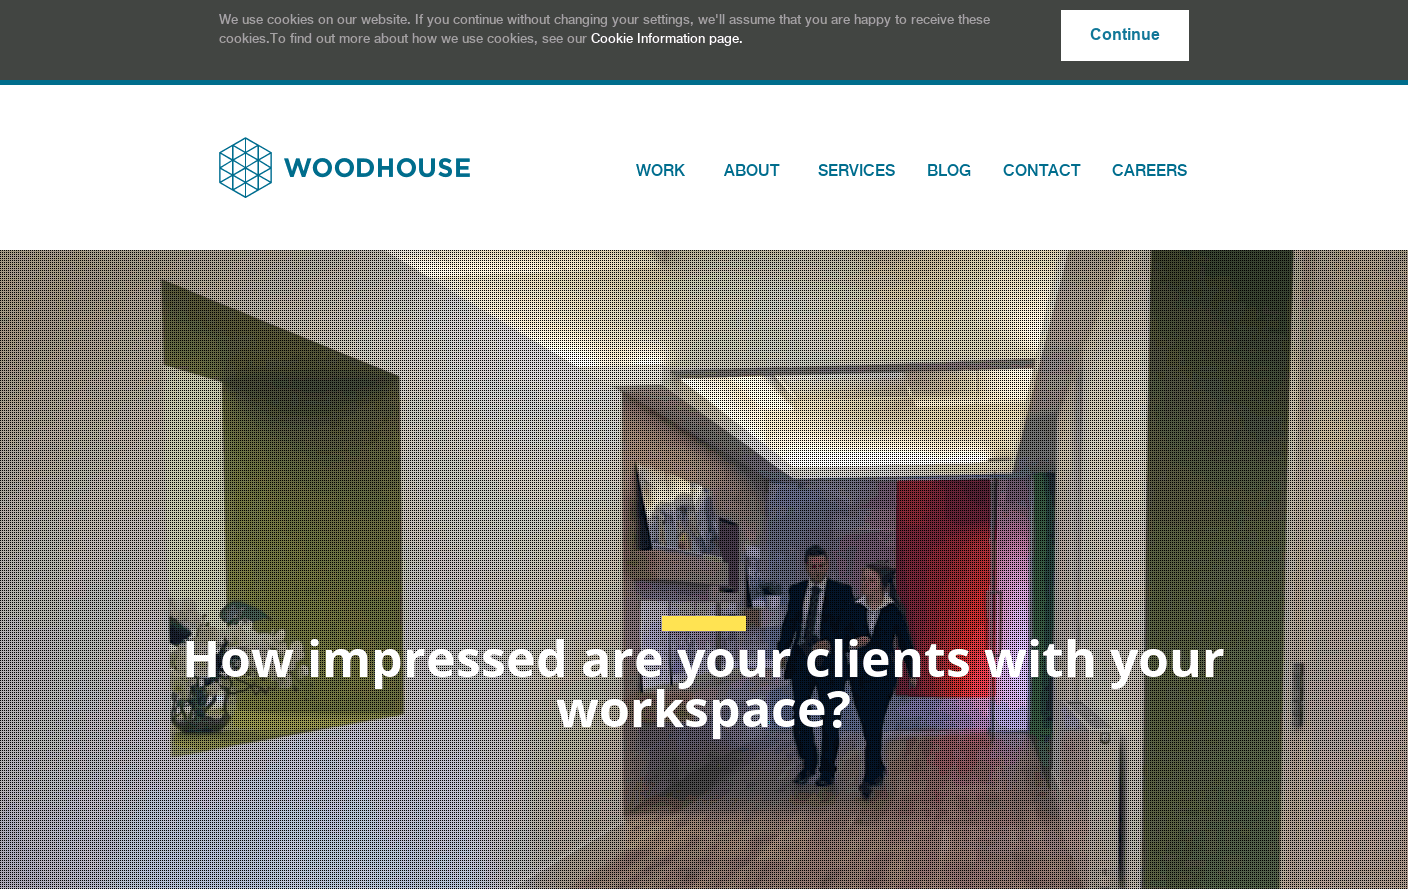 Woodhouse Workspace